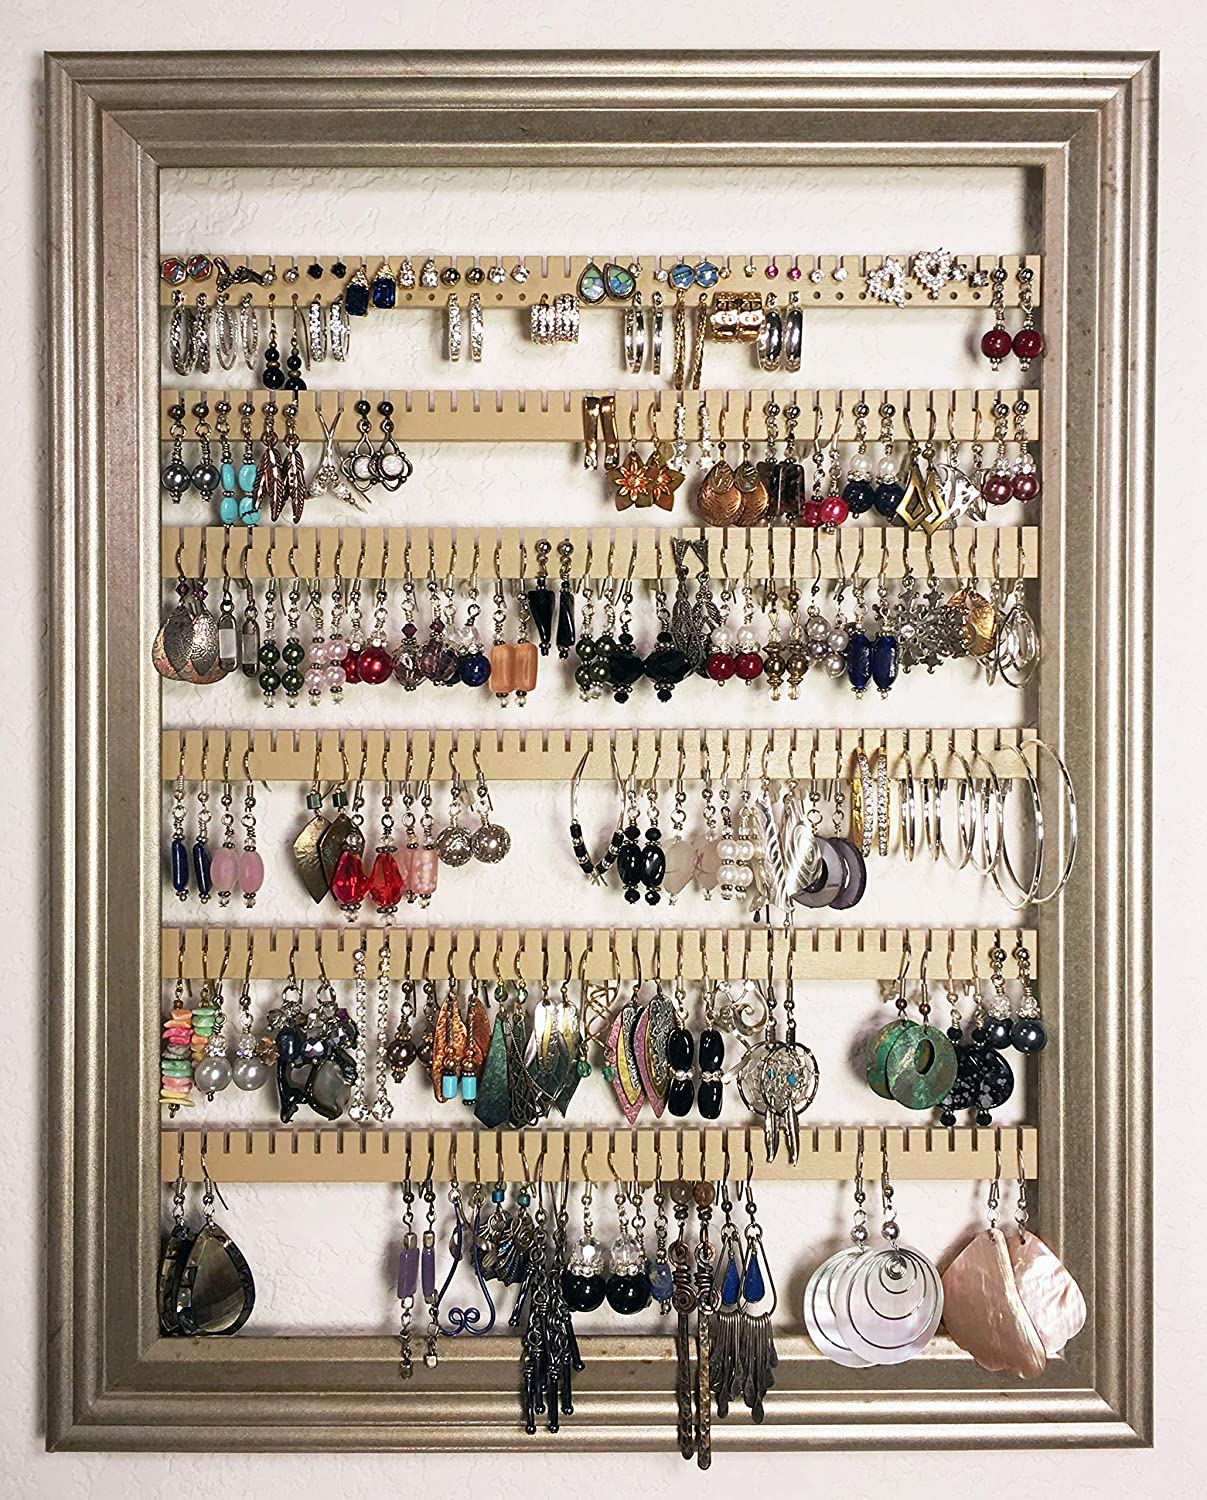 Earring Holder Organizer Storage Jewelry Rack - Wall Mounted Picture Frame Hanging Jewelry Display - Available in 4 Colors - Champagne, Large